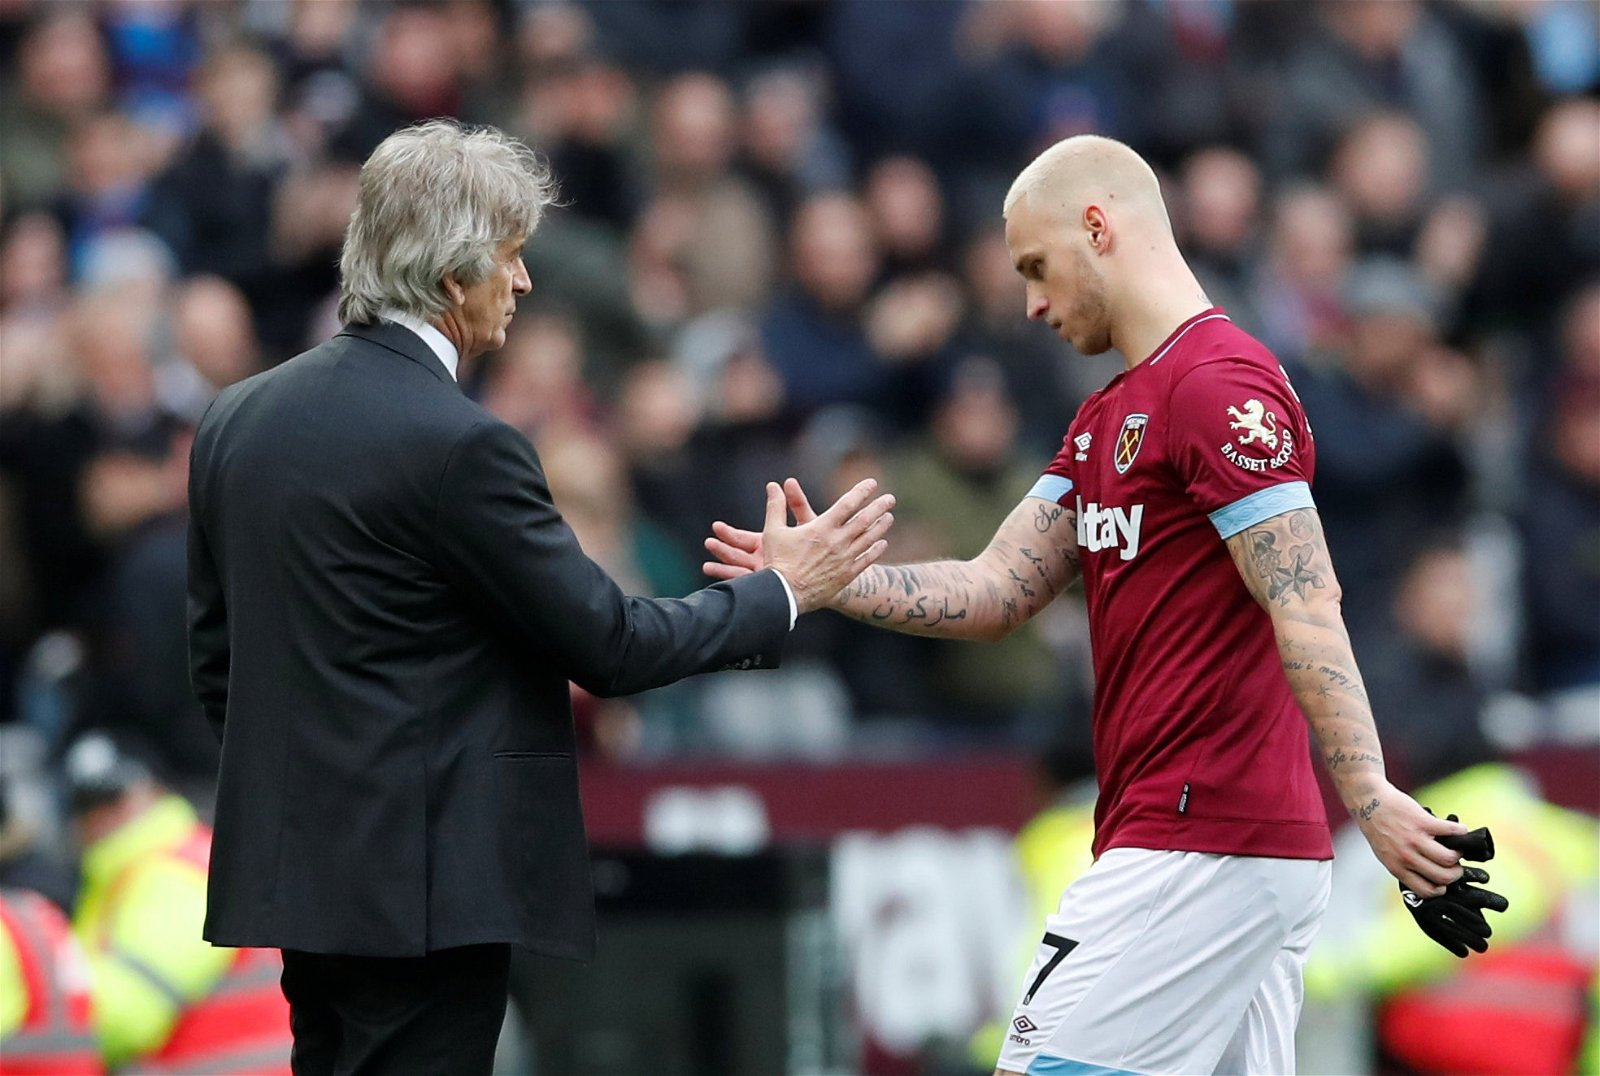 Special Report: How Marko Arnautovic's relationship with West Ham deteriorated